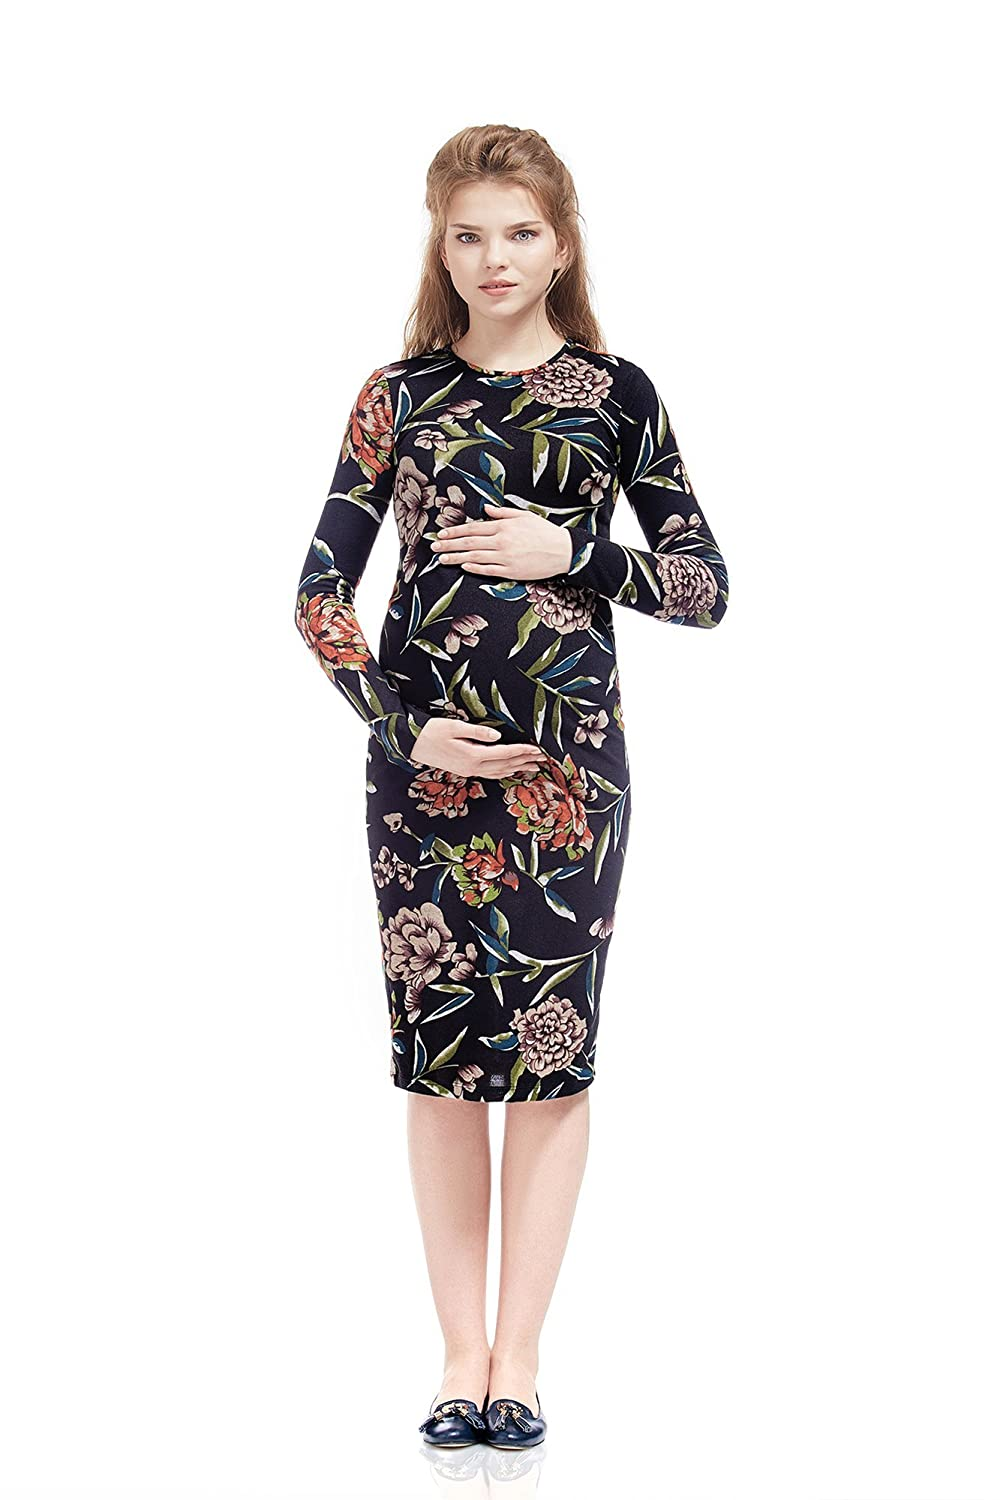 Maternity Dress Daniela Mustard Floral Print Bodycon Midi By Nothing But Love NBL